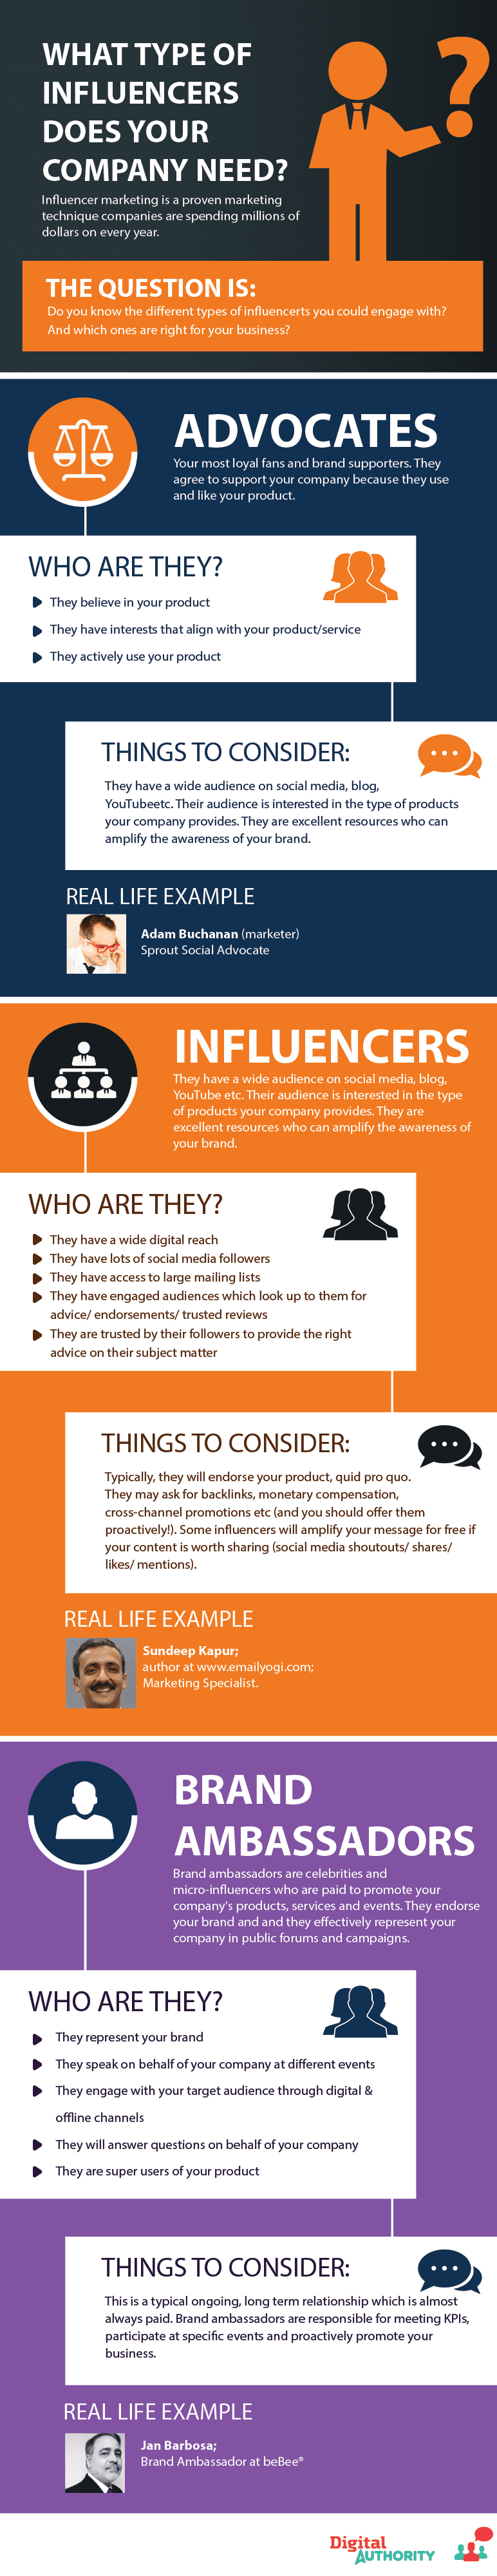 Infographic: What type of influencers does your company need?